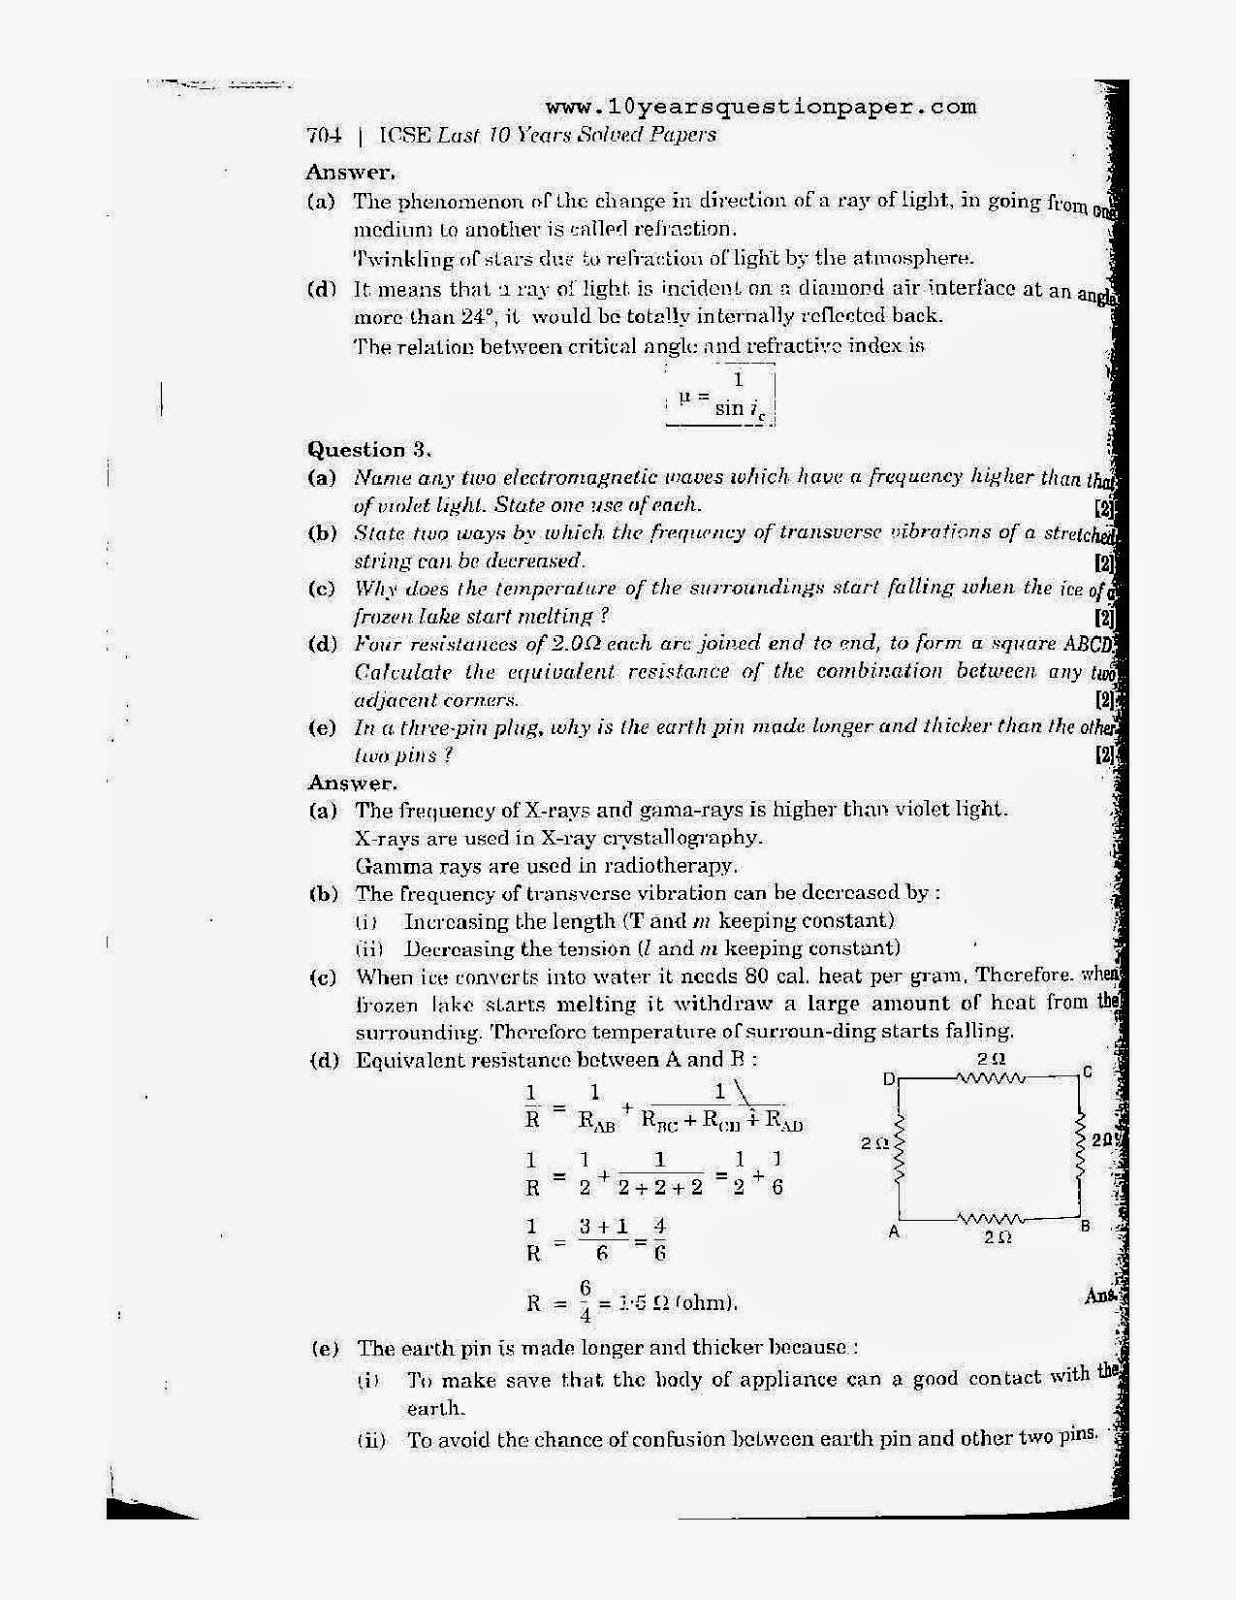 Old Fashioned Maths Worksheets For Class 8 Icse Gallery - Math ...